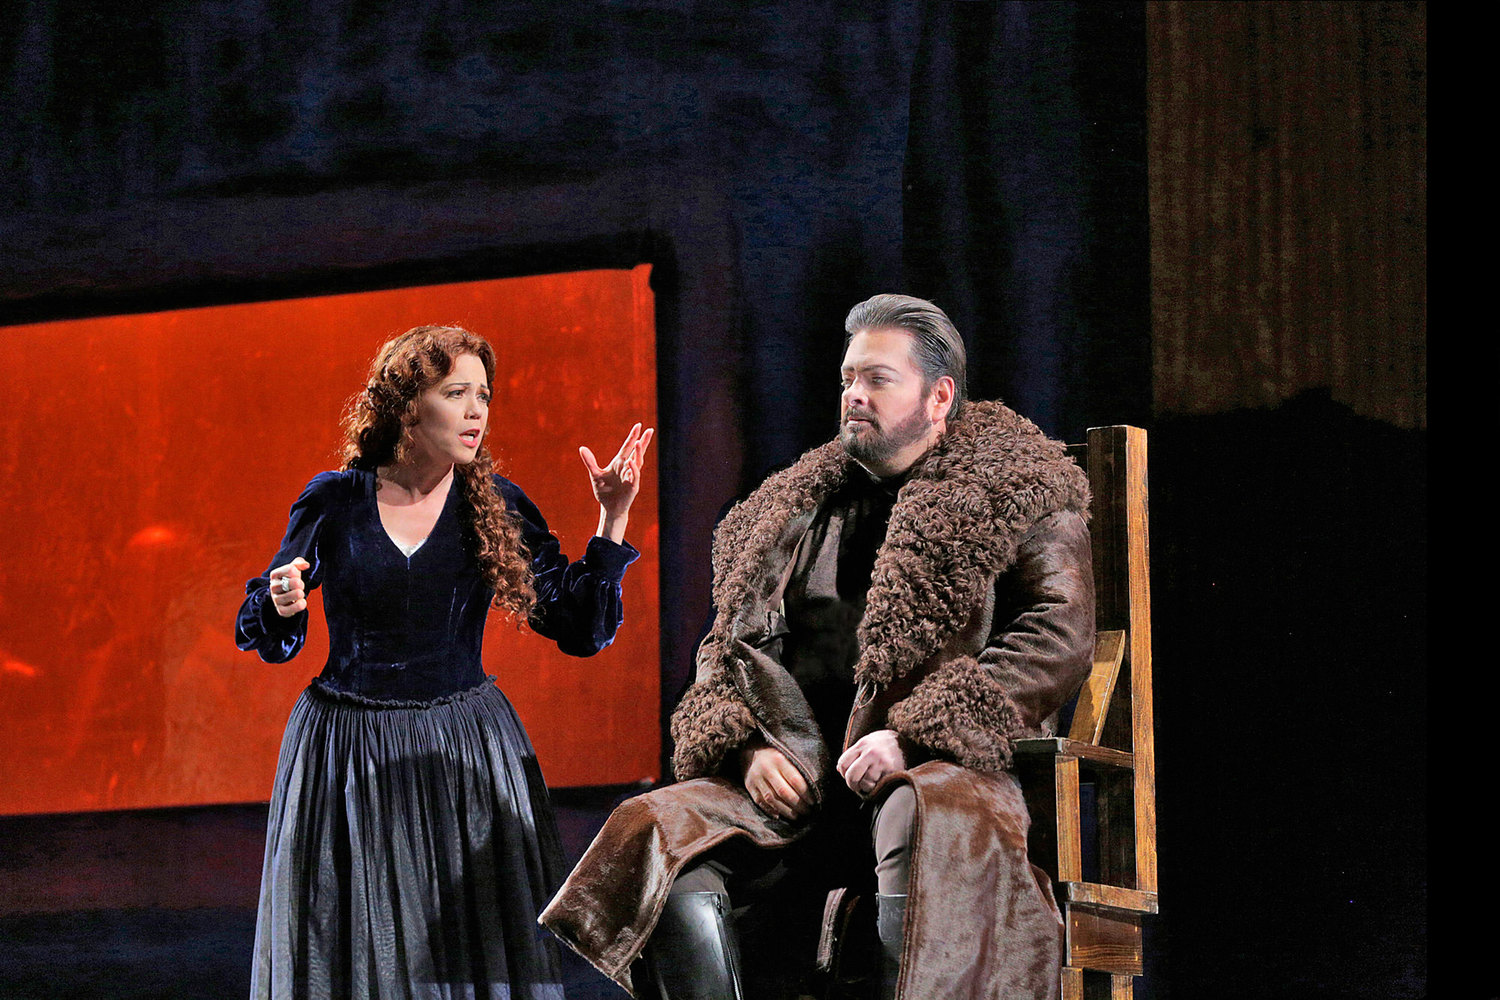 Elizabeth Futral as Lucia and Weston Hurt as Enrico in Puccini's  Lucia di Lammermoor  at Portland Opera. Photo by Ken Howard.